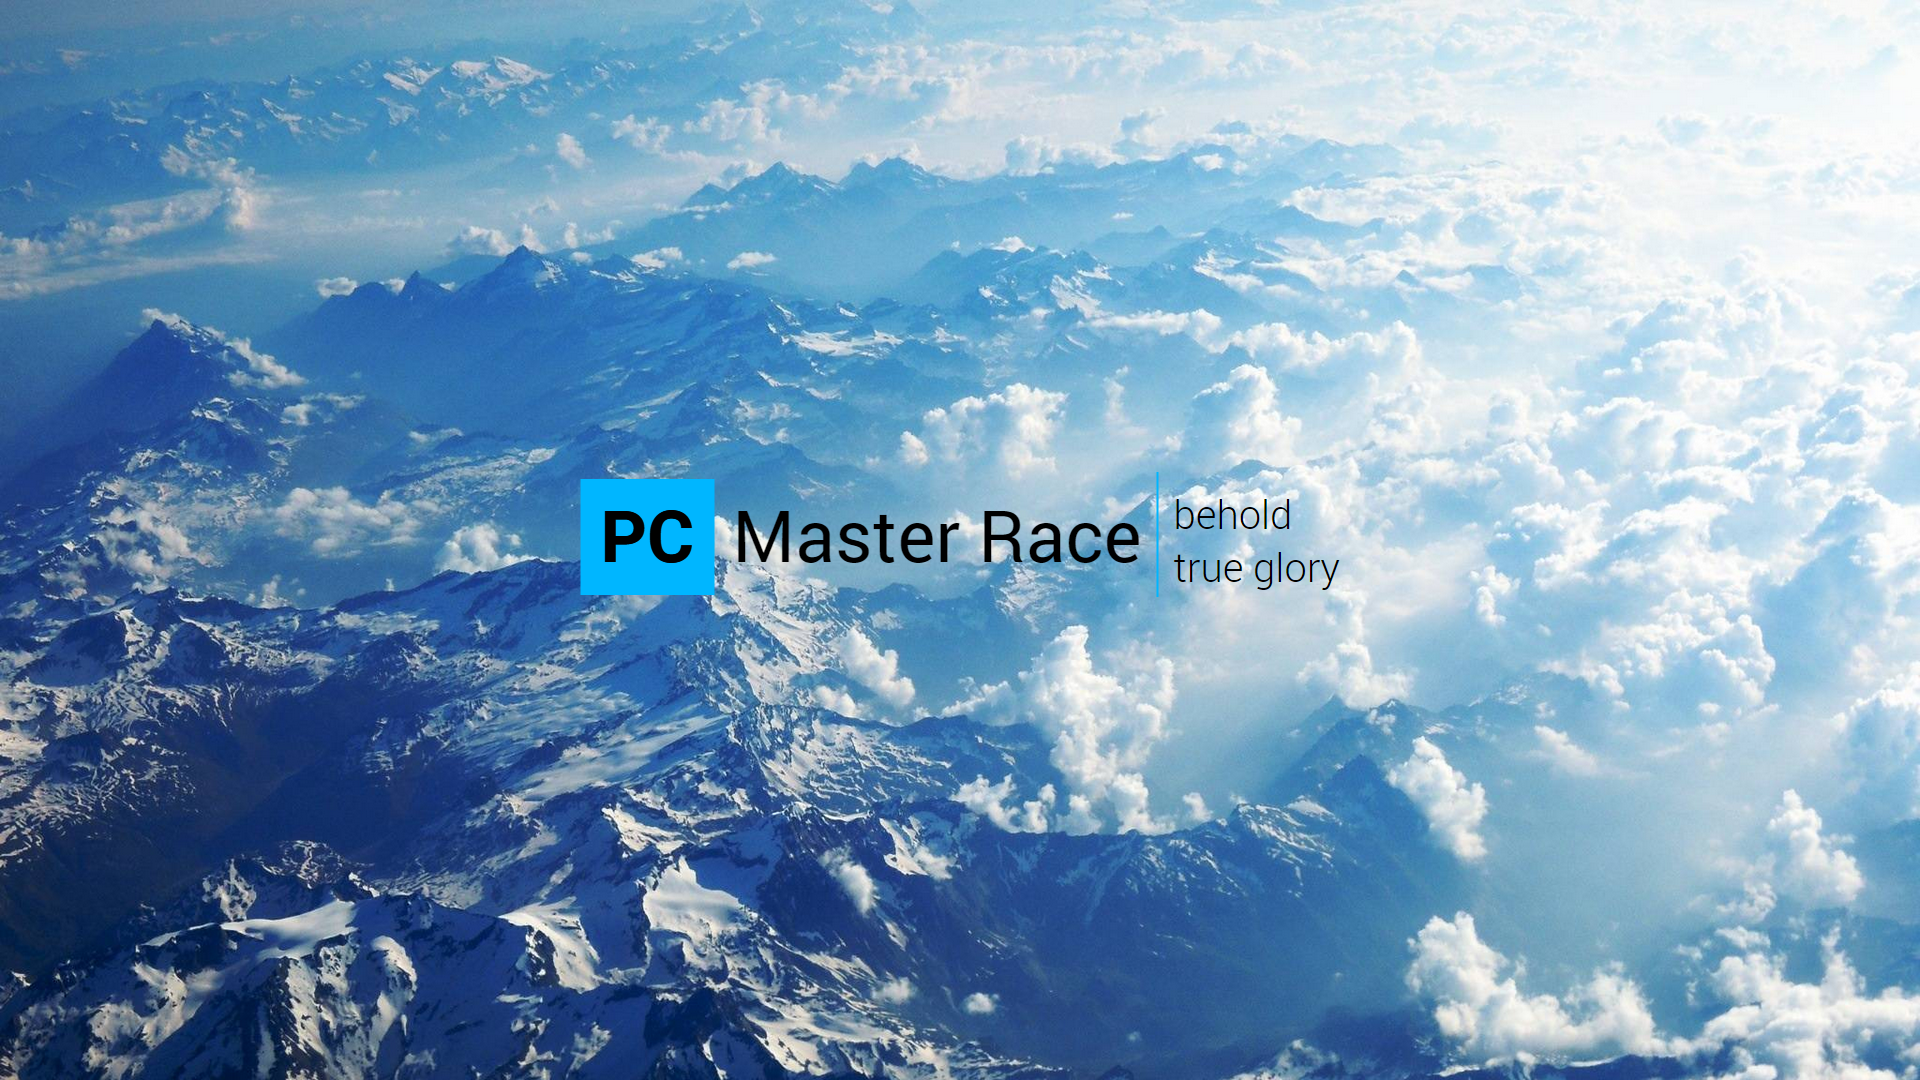 Pcmr Backgrounds Posted By Christopher Cunningham